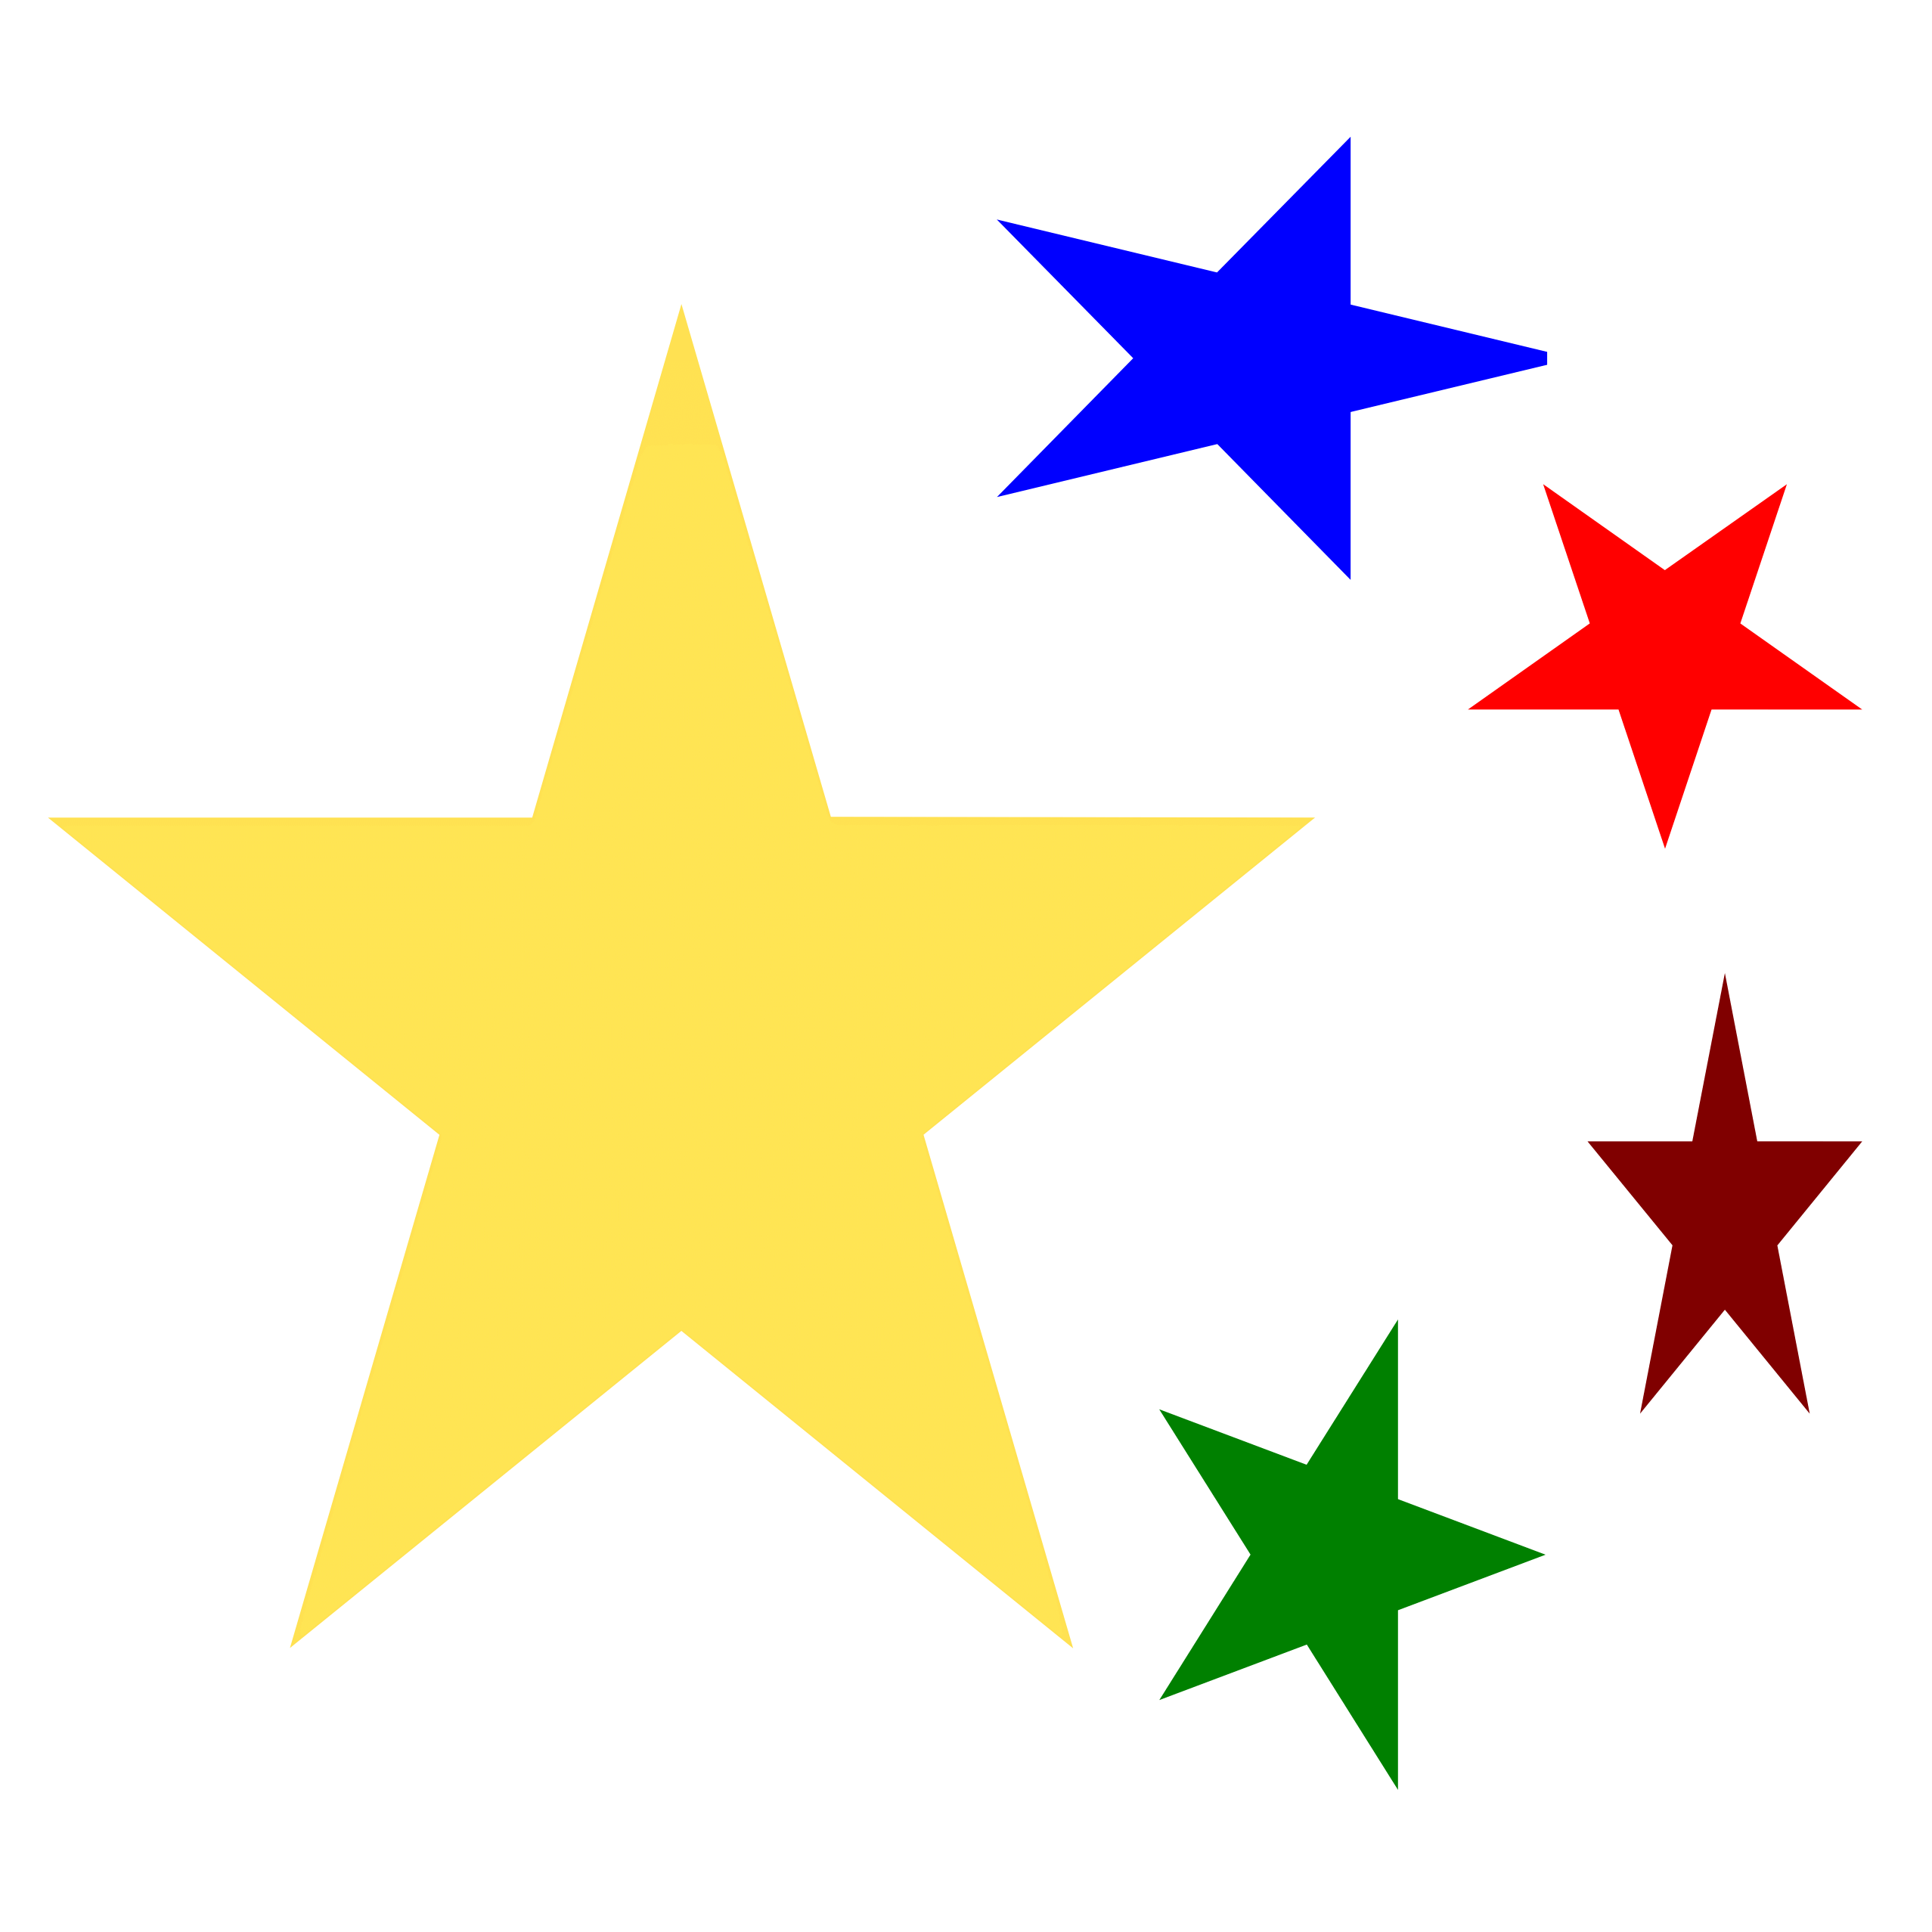 Smiling star clipart svg black and white library Free Book Star Cliparts, Download Free Clip Art, Free Clip Art on ... svg black and white library